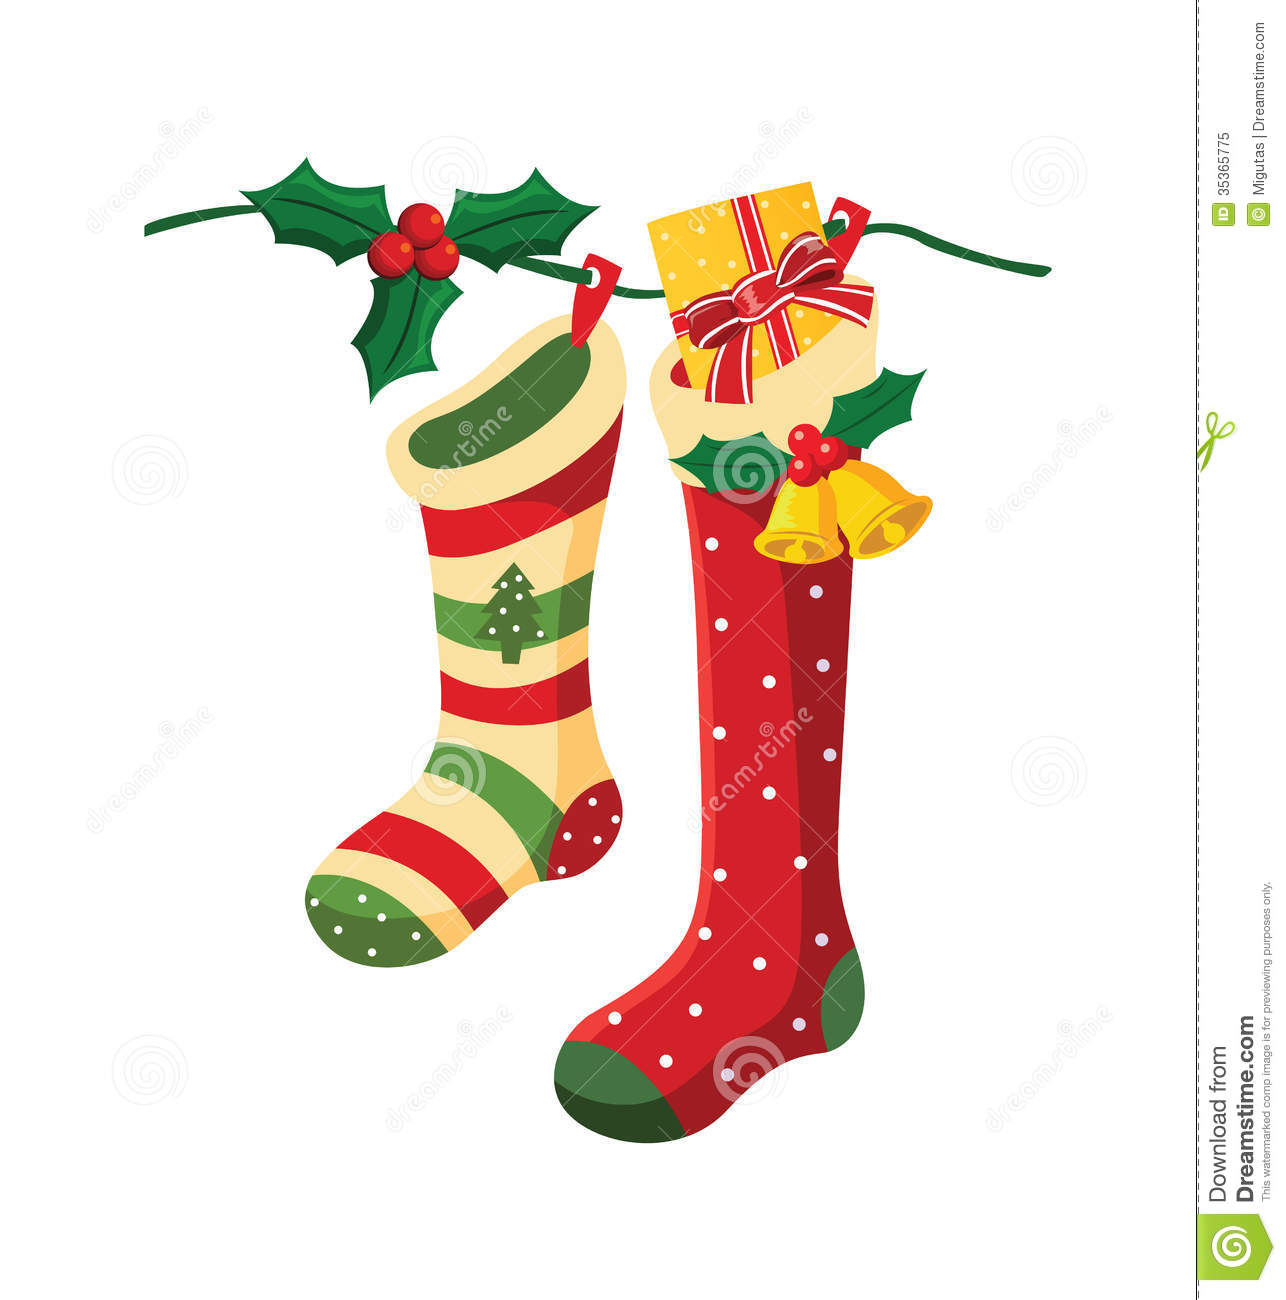 Christmas Socks. Royalty Free Stock Photo - Image: 35365775